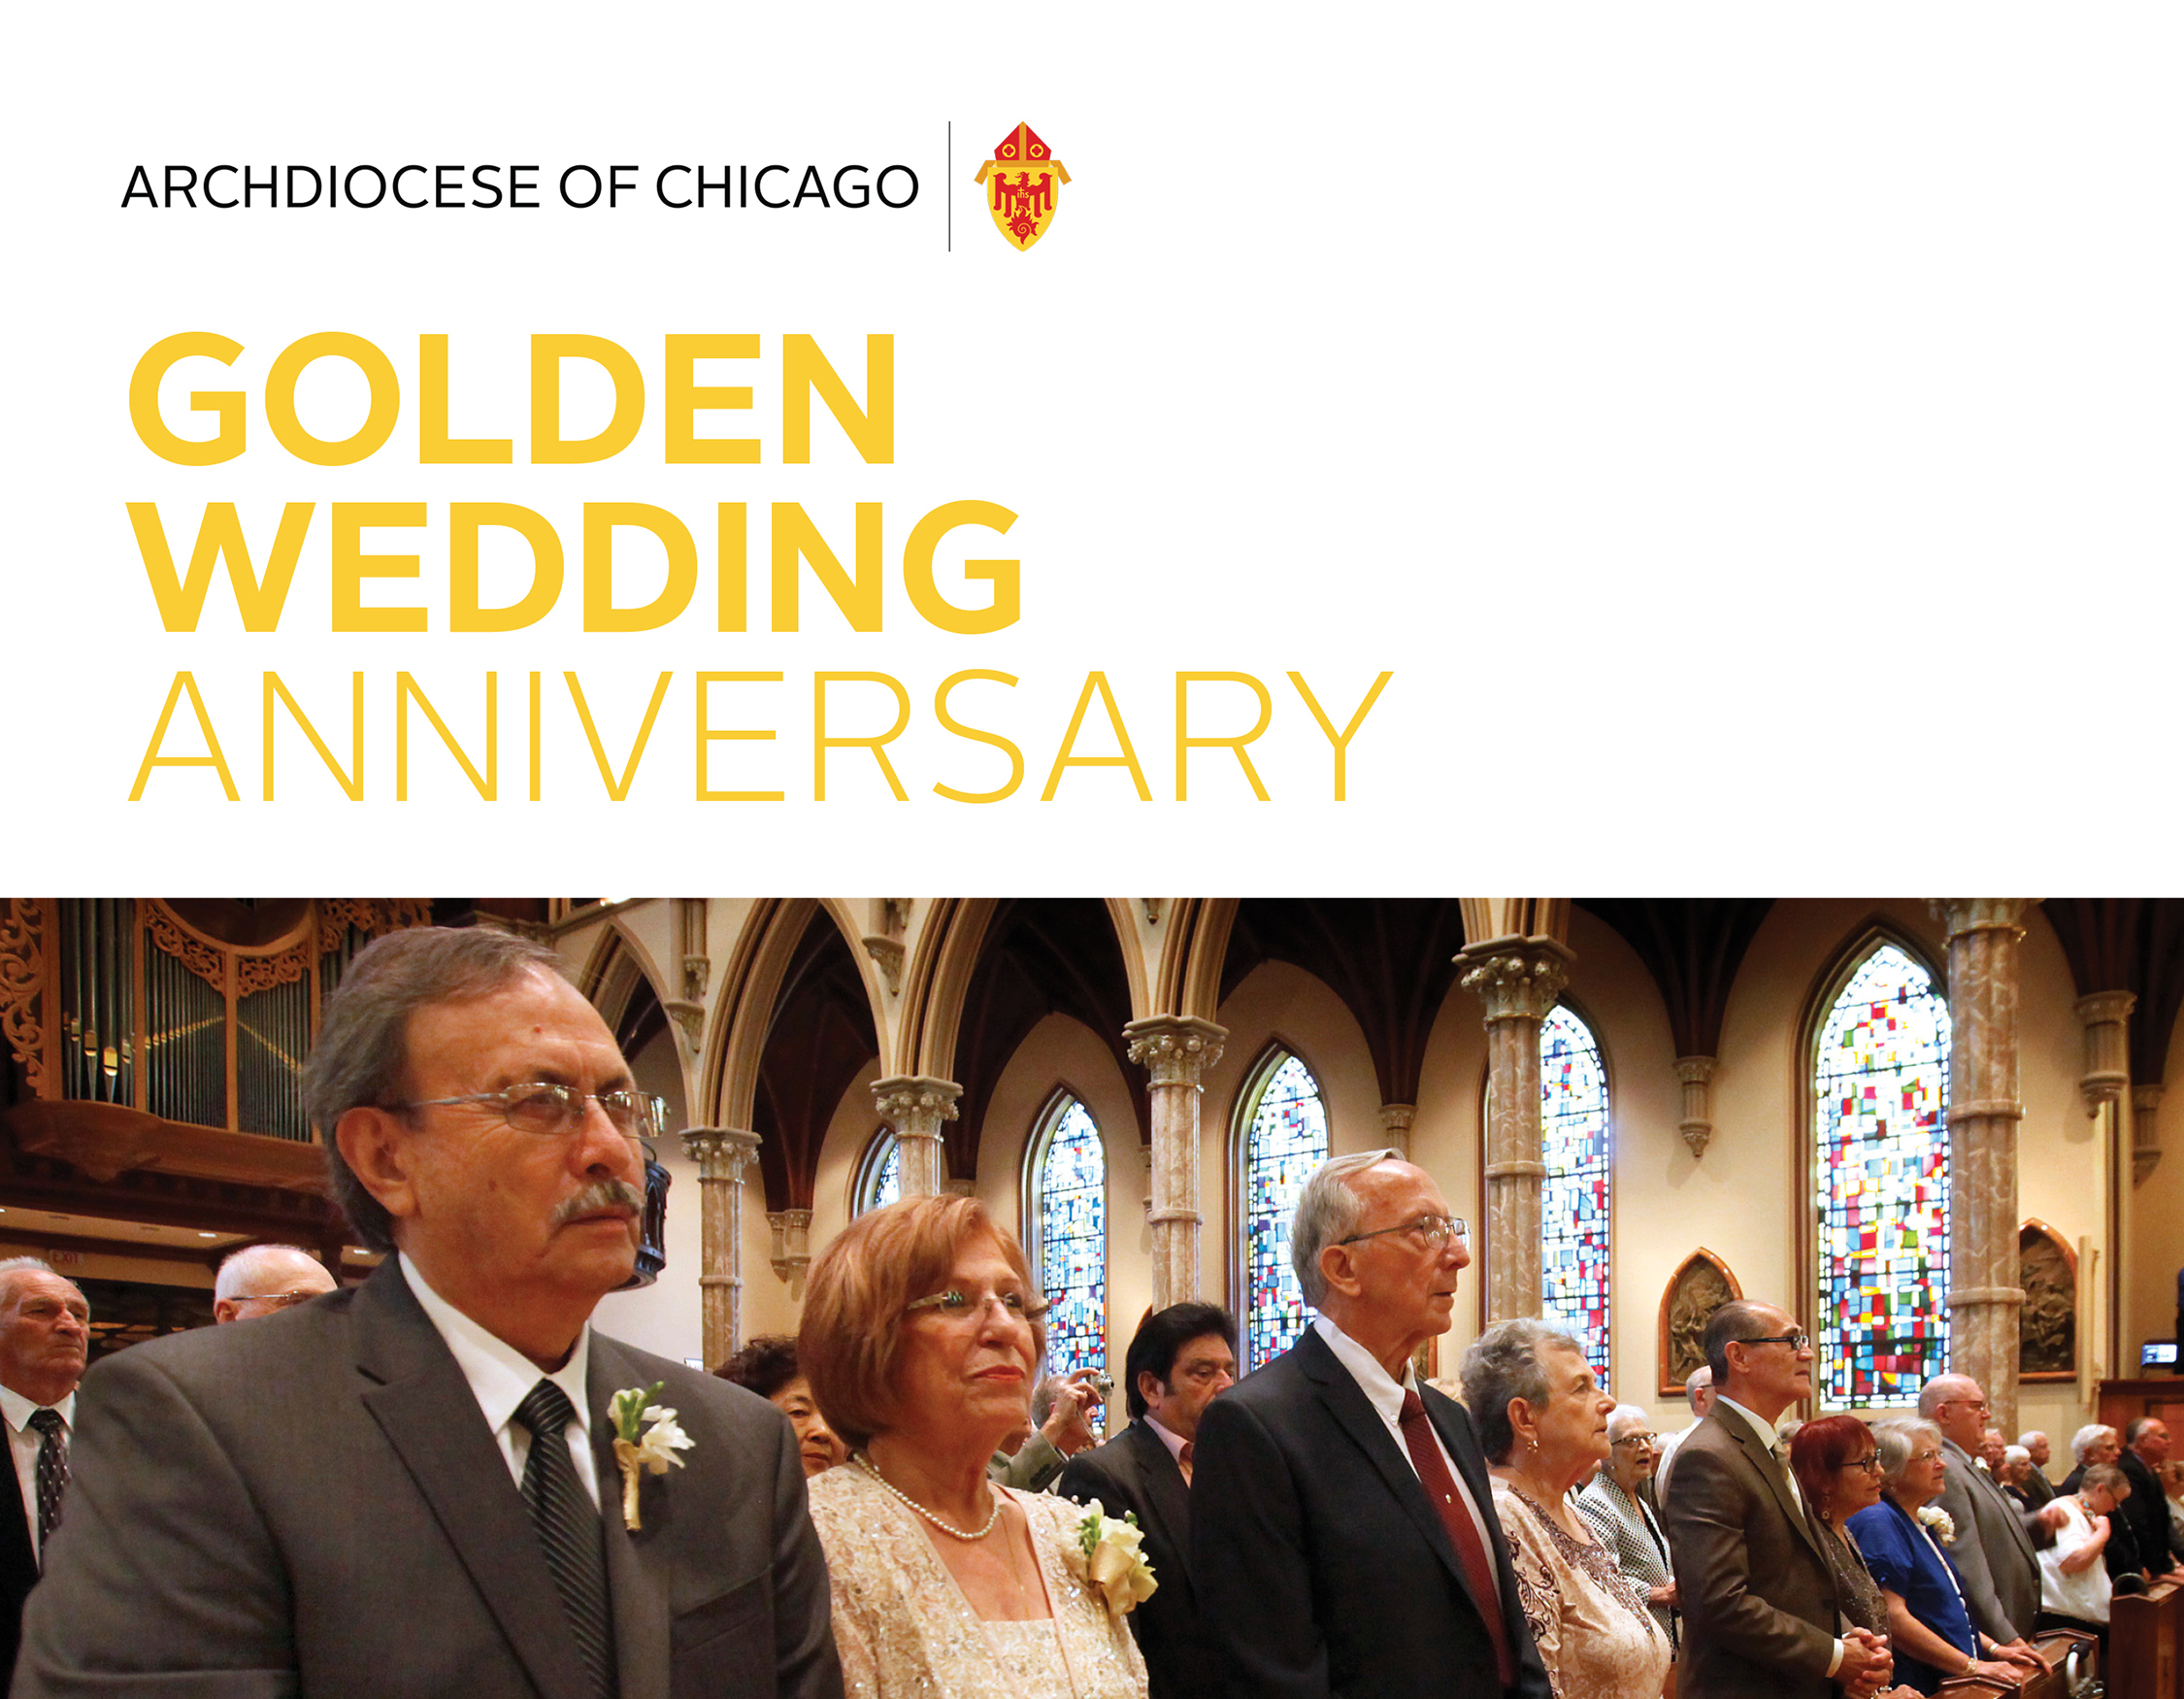 Golden Wedding Anniversary Mass